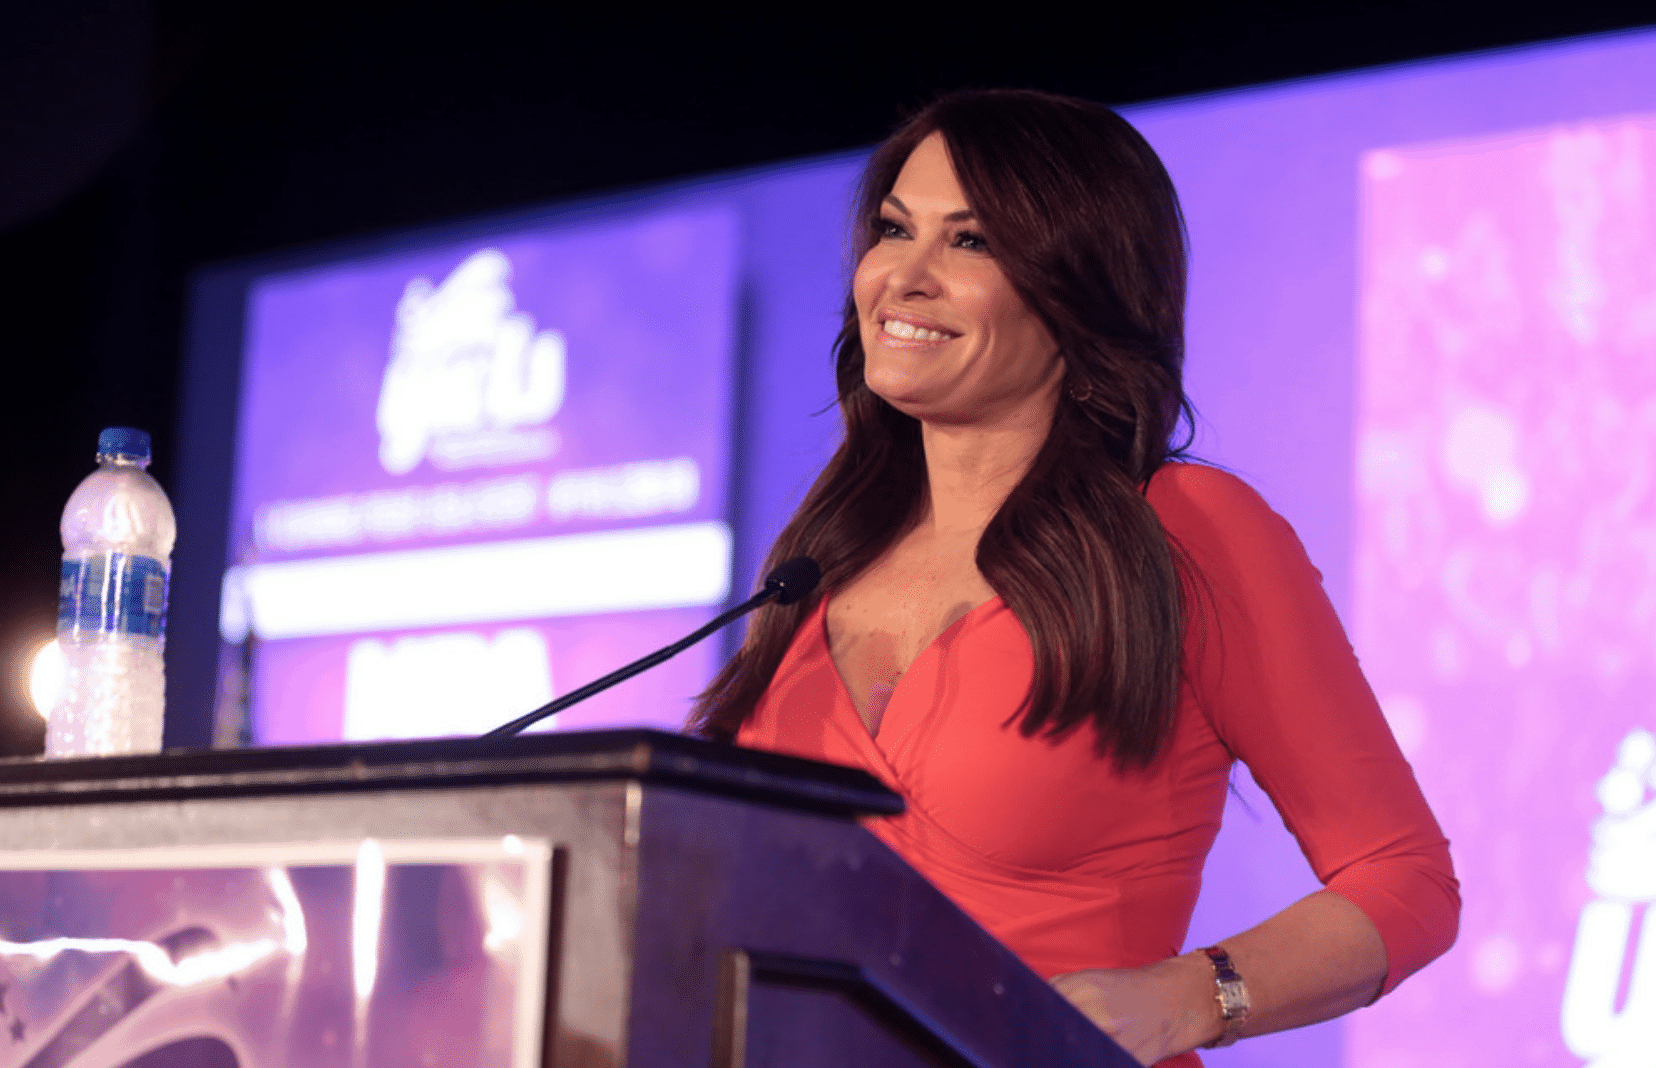 Fox Allegedly Cut Ties With Don Jr's Girlfriend, Guilfoyle, for Sharing Photos of Male Genitalia